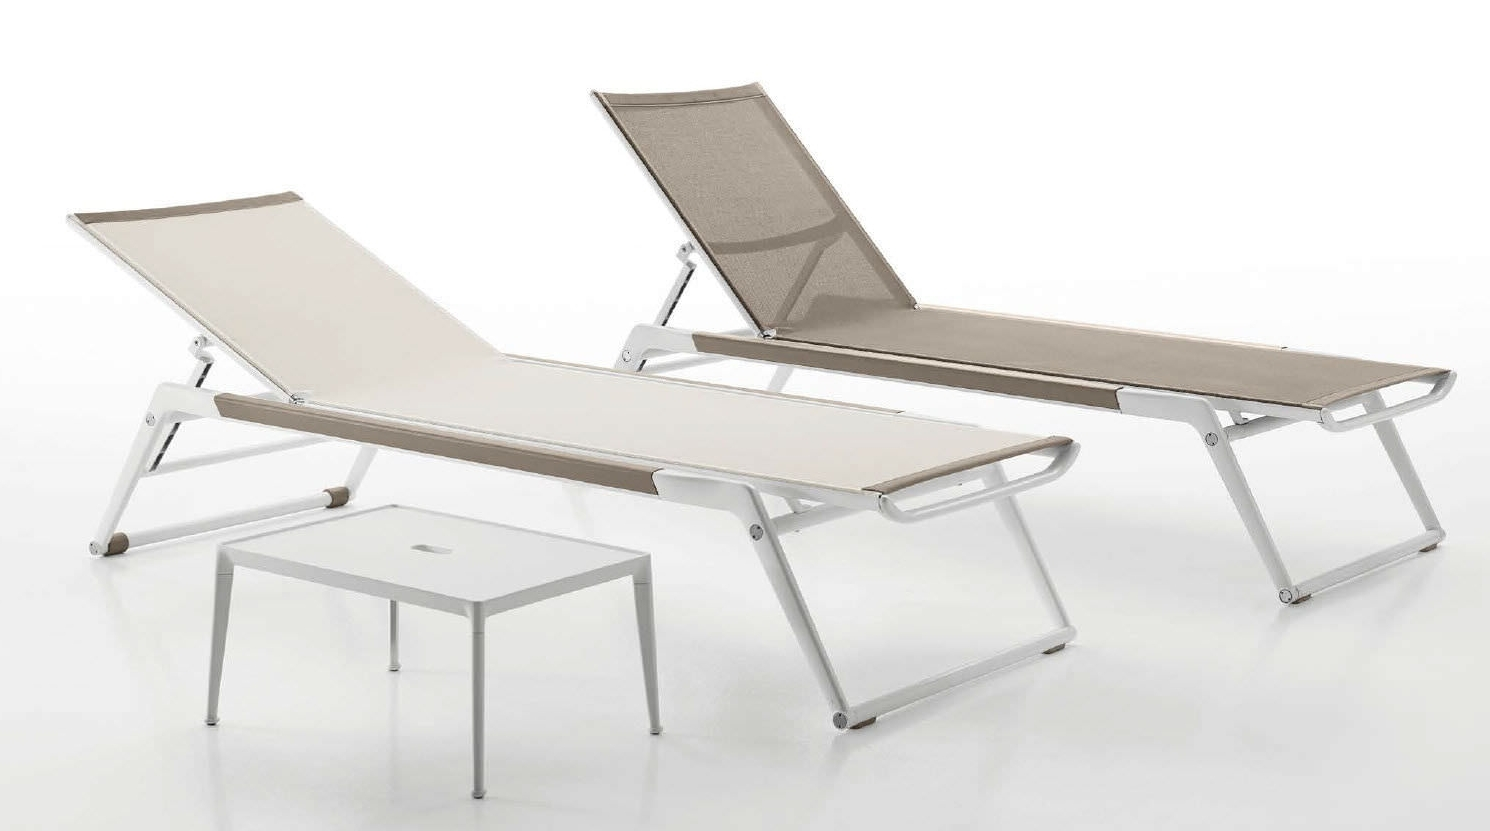 Outdoor : Lounge Chair Outdoor Outdoor Chaise Lounge Chairs Lounge Regarding 2018 Chaise Lounge Chairs At Target (View 13 of 15)